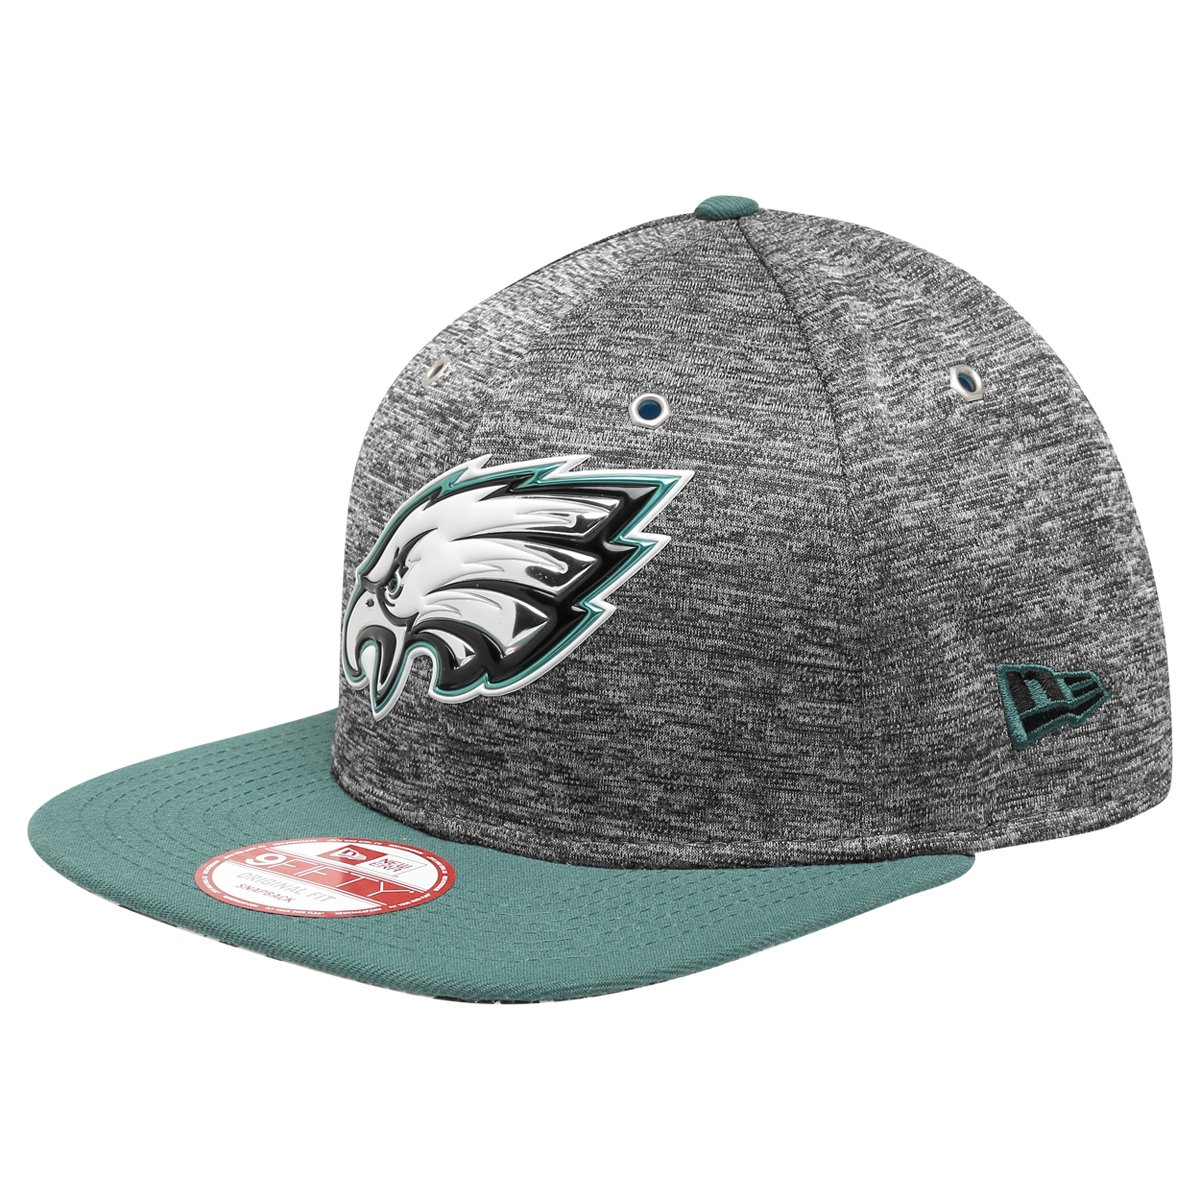 Boné New Era 950 NFL Of Sn Draft 2016 Philadelphia Eagles - Compre ... b3378560d12